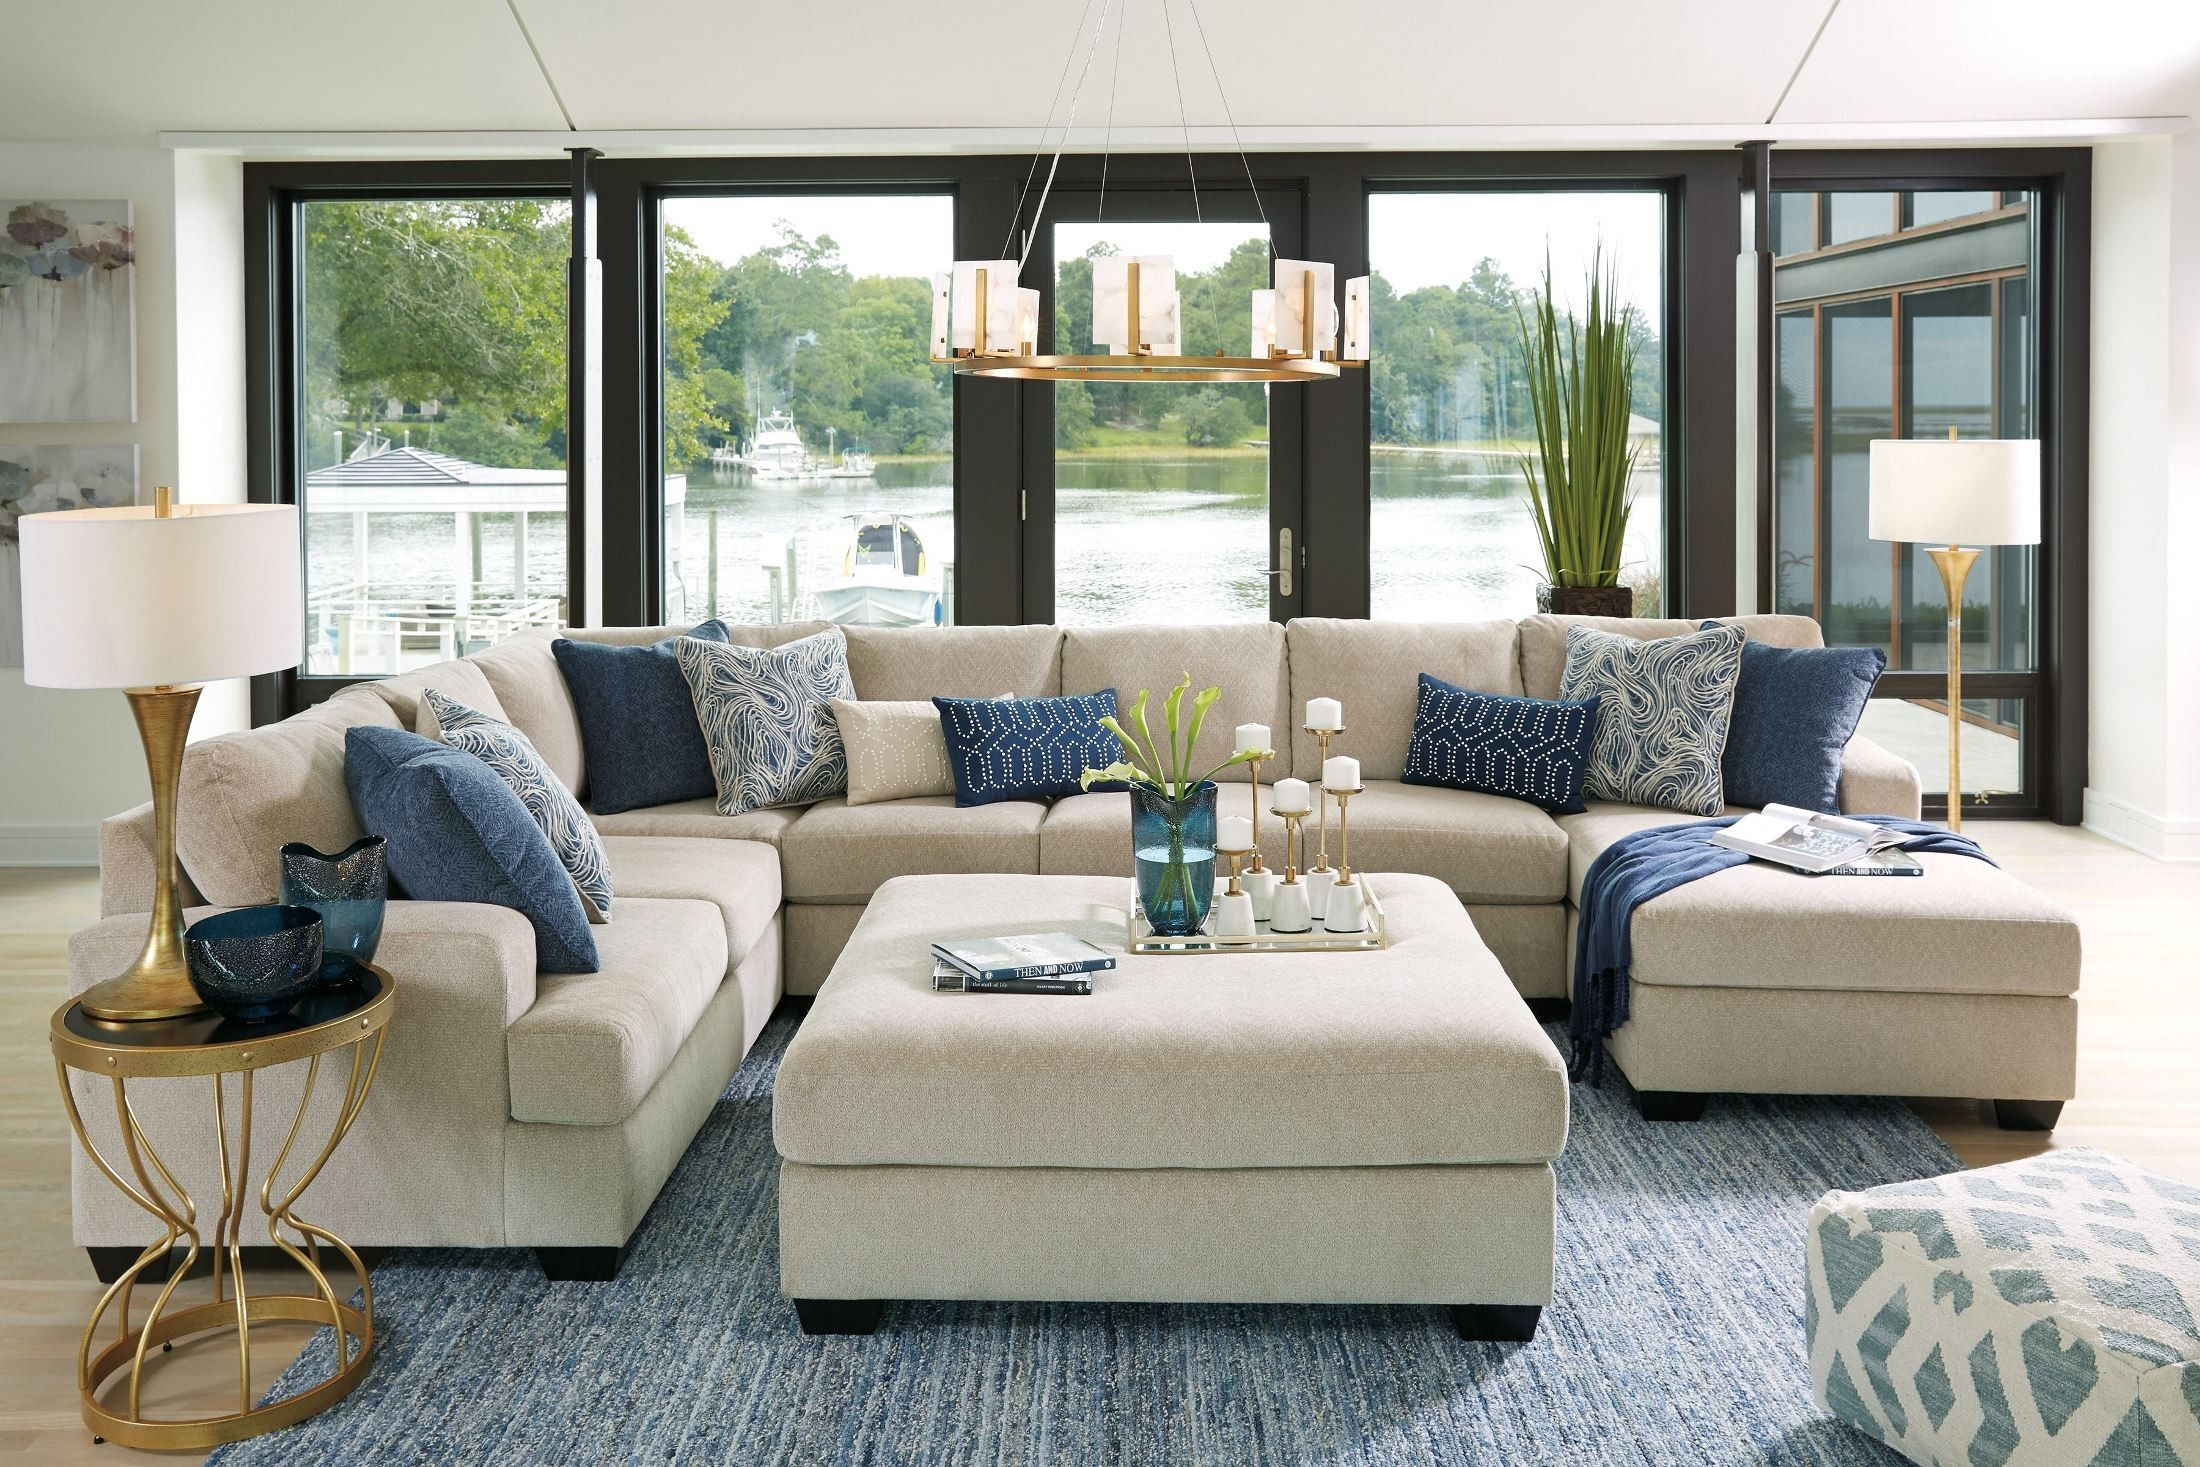 competitive price ae0d2 09ad6 Enola Sepia Oversized Accent Ottoman | living room ideas in ...